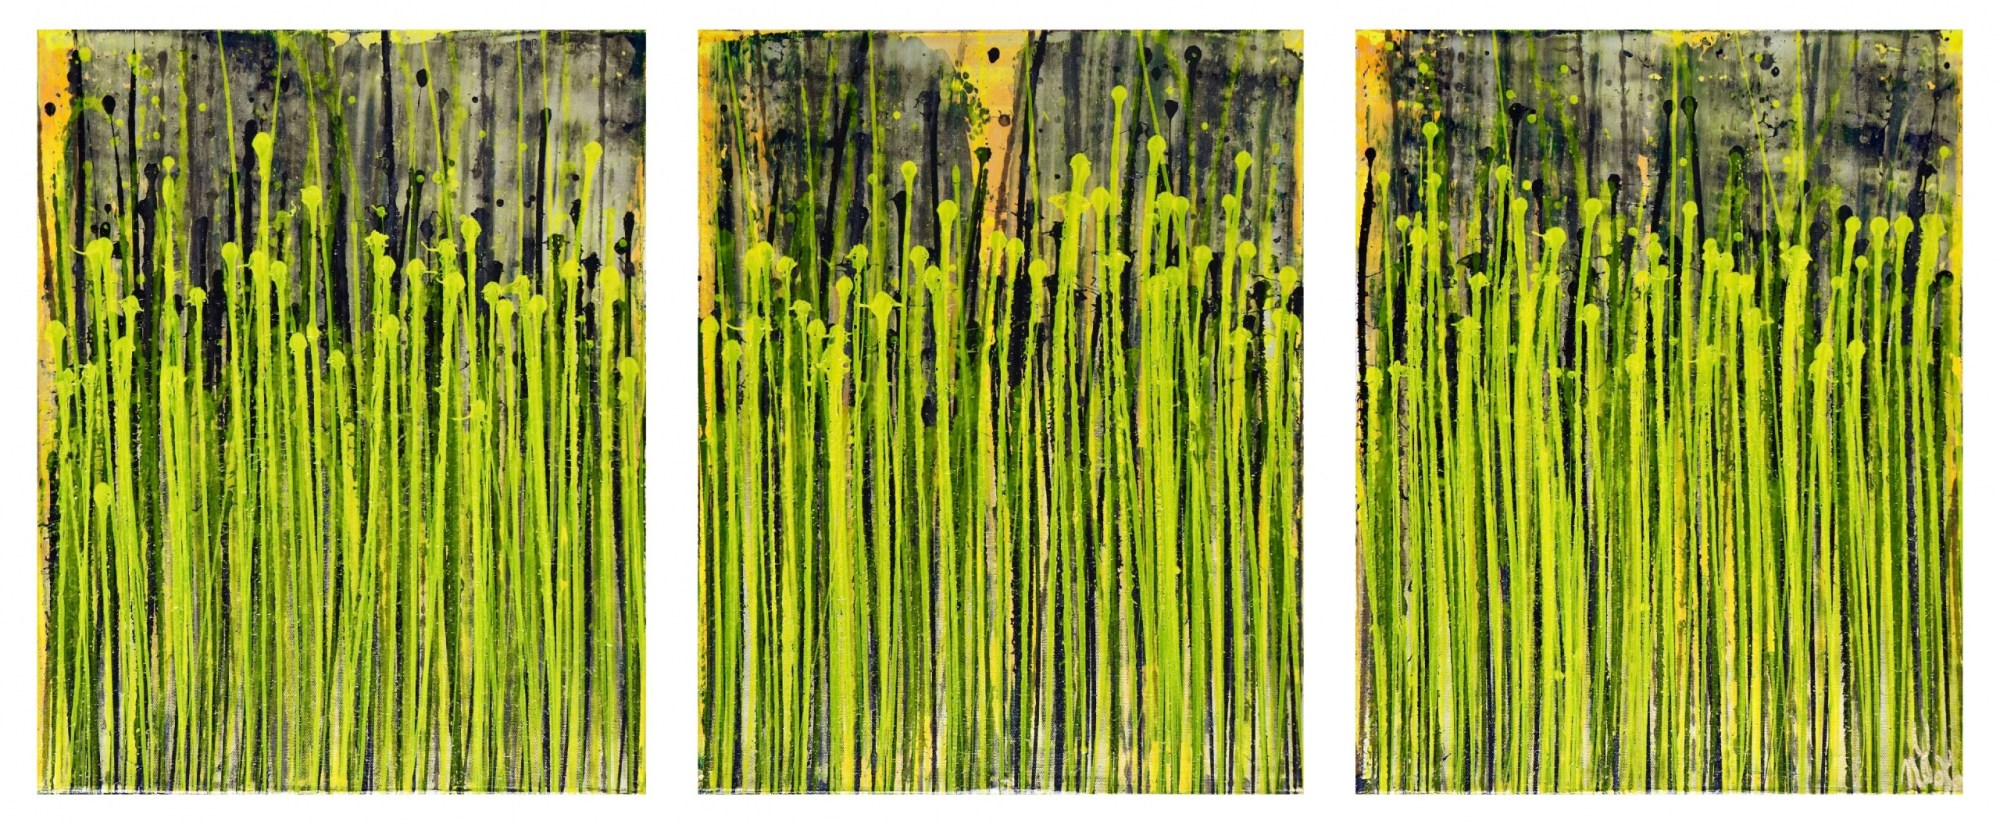 Full Triptych - Daydream Panorama (Natures Imagery) 17 (2020) - Triptych by Nestor Toro